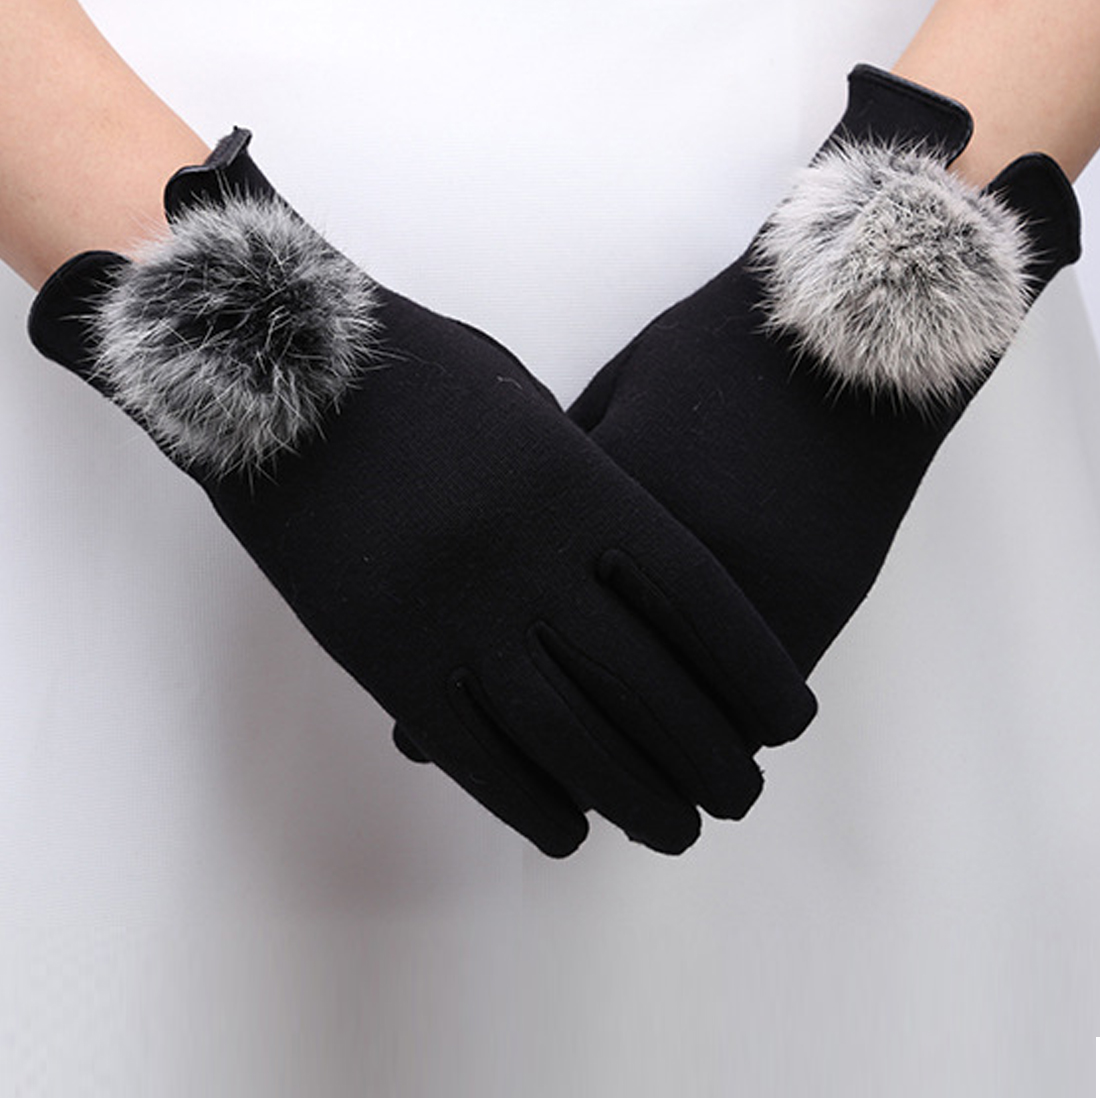 Fashion Women Winter Elegant Cotton Gloves Real Rabbit Fur Pompom Cotton Glove Touch Screen Driver's Gloves Mittens